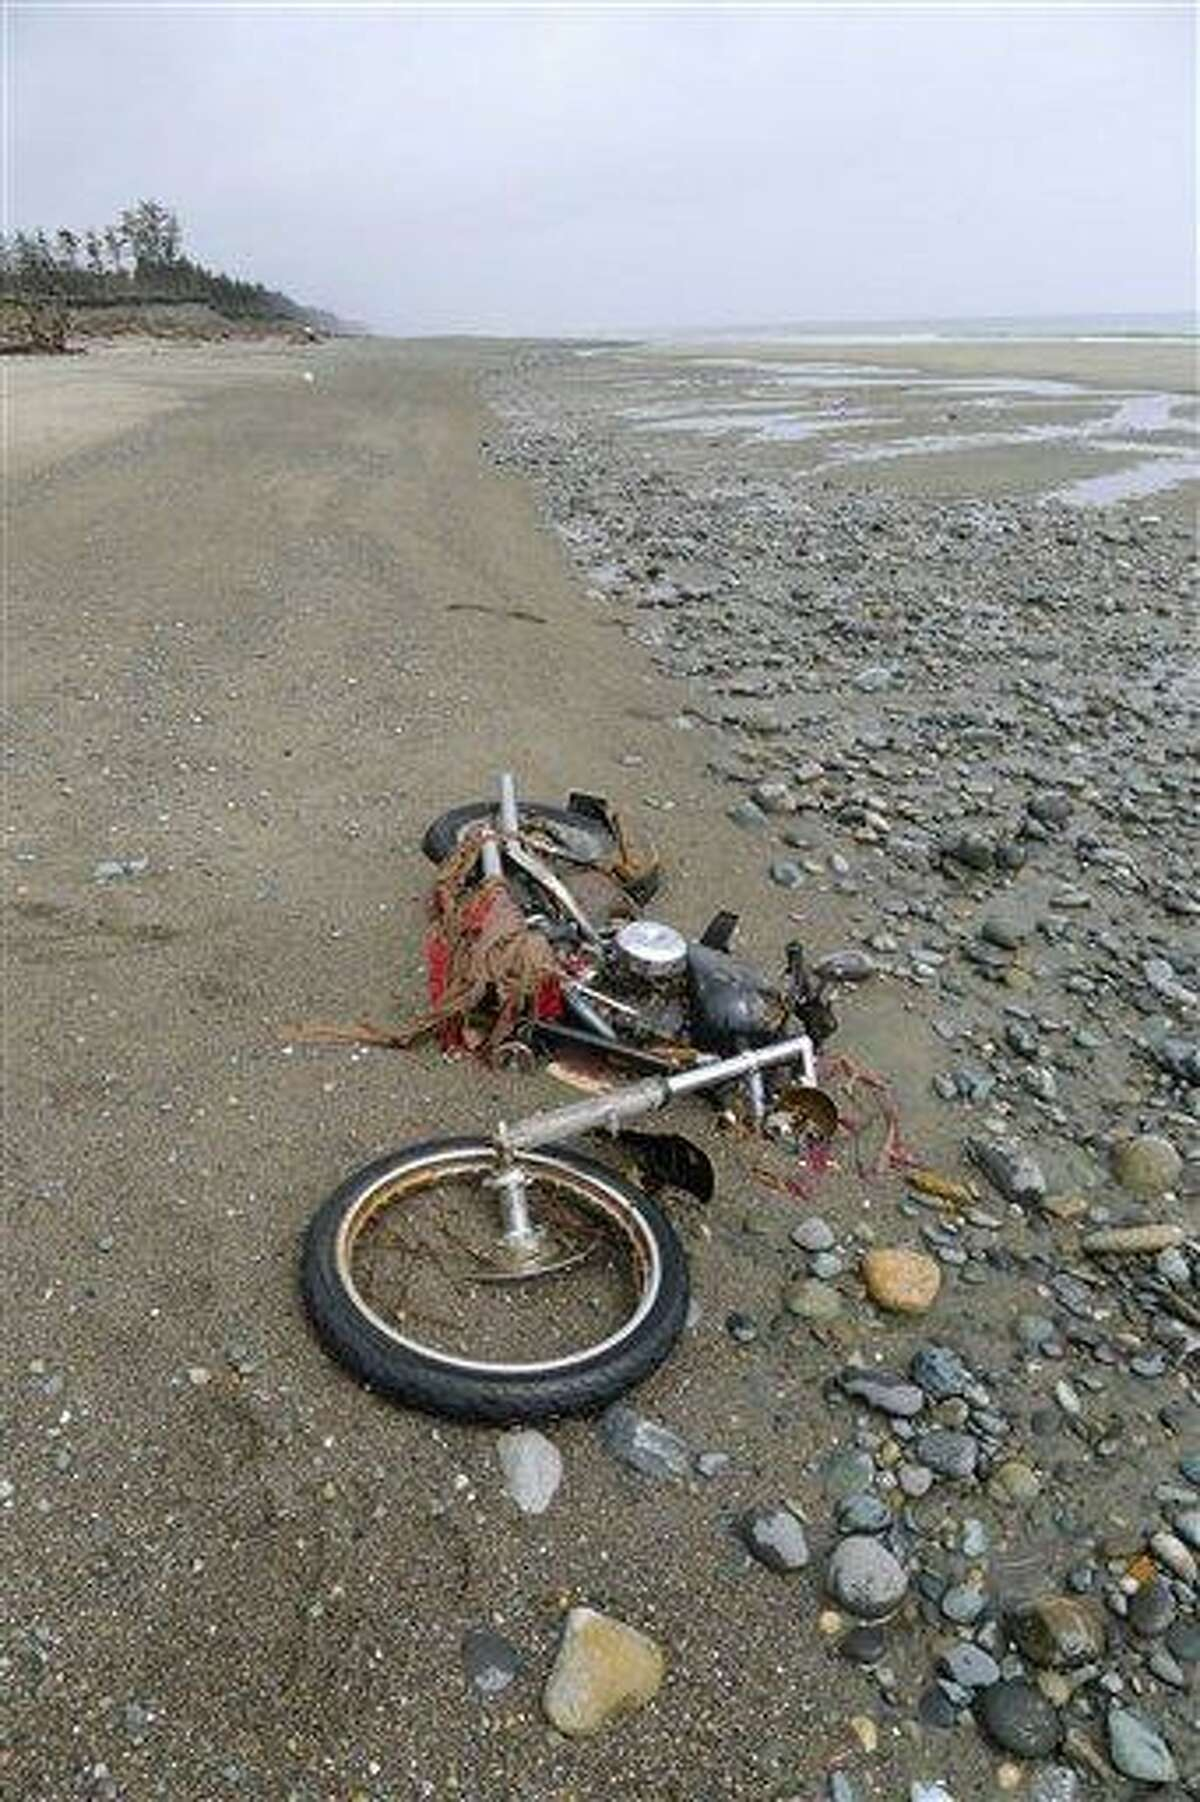 In this photo taken by Canadian Peter Mark at the end of April, a Harley-Davidson motorbike lies on a beach in Graham Island, western Canada. Japanese media say the motorcycle lost in last year's tsunami washed up on the island about 6,400 kilometers (4,000 miles) away. The rusted bike was originally found by Mark in a large white container where its owner, Ikuo Yokoyama, had kept it. The container was later washed away, leaving the motorbike half-buried in the sand. Yokoyama, who lost three members of his family in the March 11, 2011, tsunami, was located through the license plate number, Fuji TV reported. Associated Press